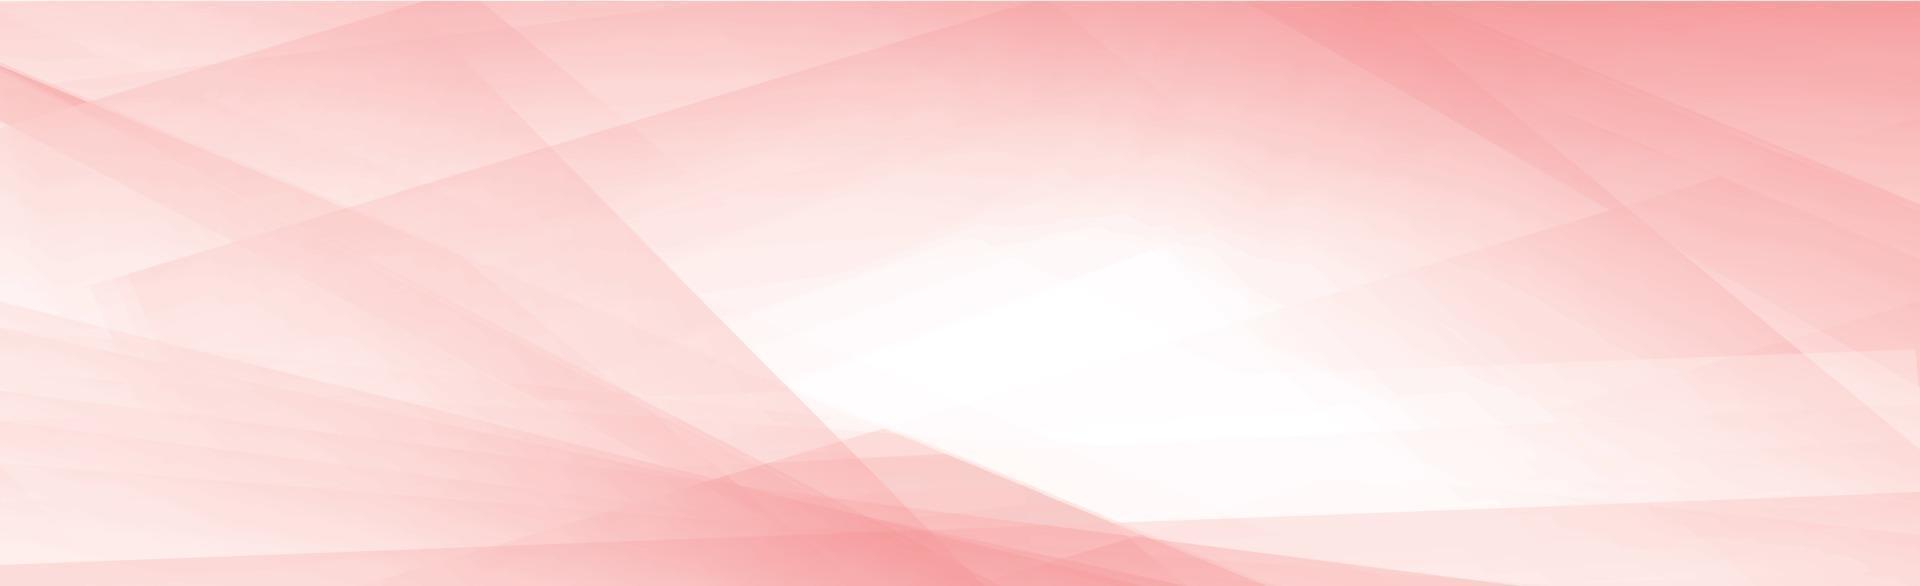 Panoramic abstract background with various shades of red - Vector